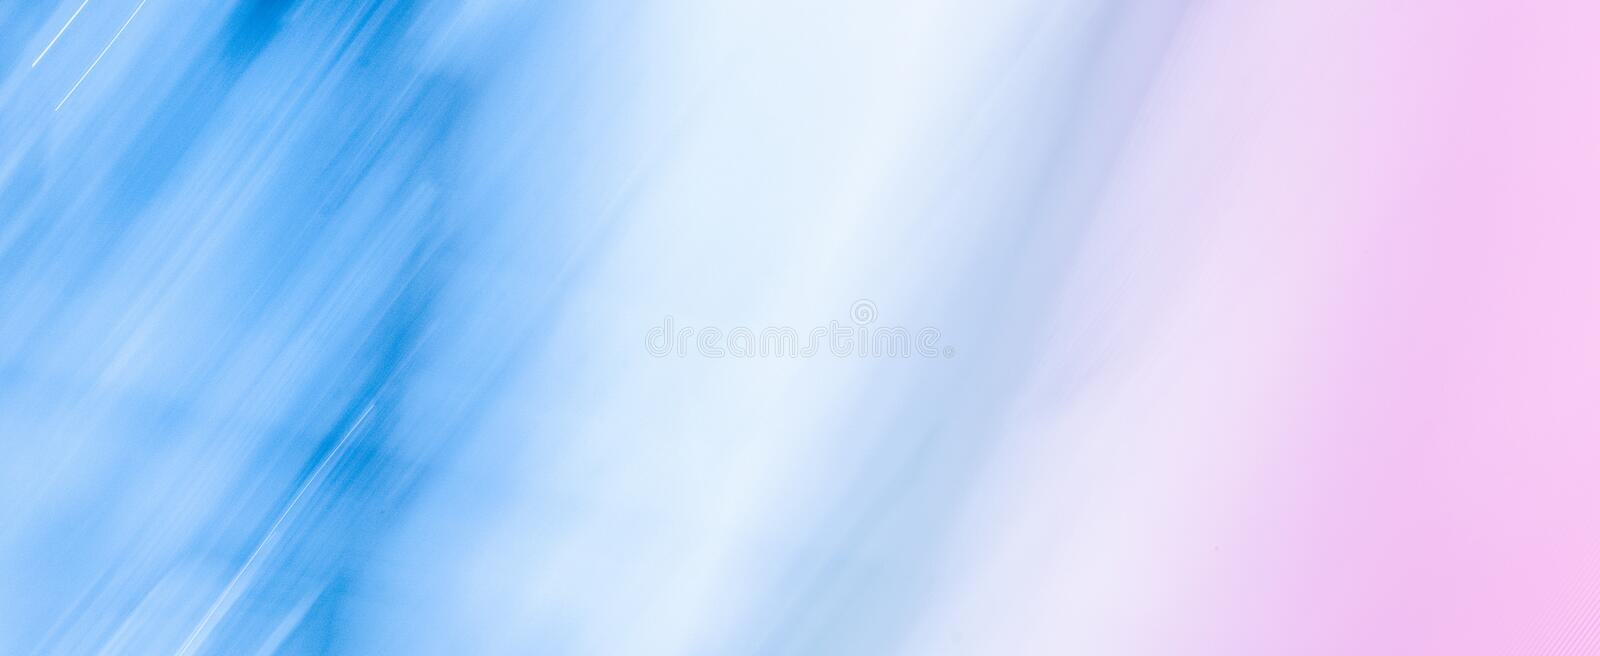 The future is now. Futuristic neon design - tech backgrounds, abstract art and modern pastel colours concept. The future is now royalty free stock photo